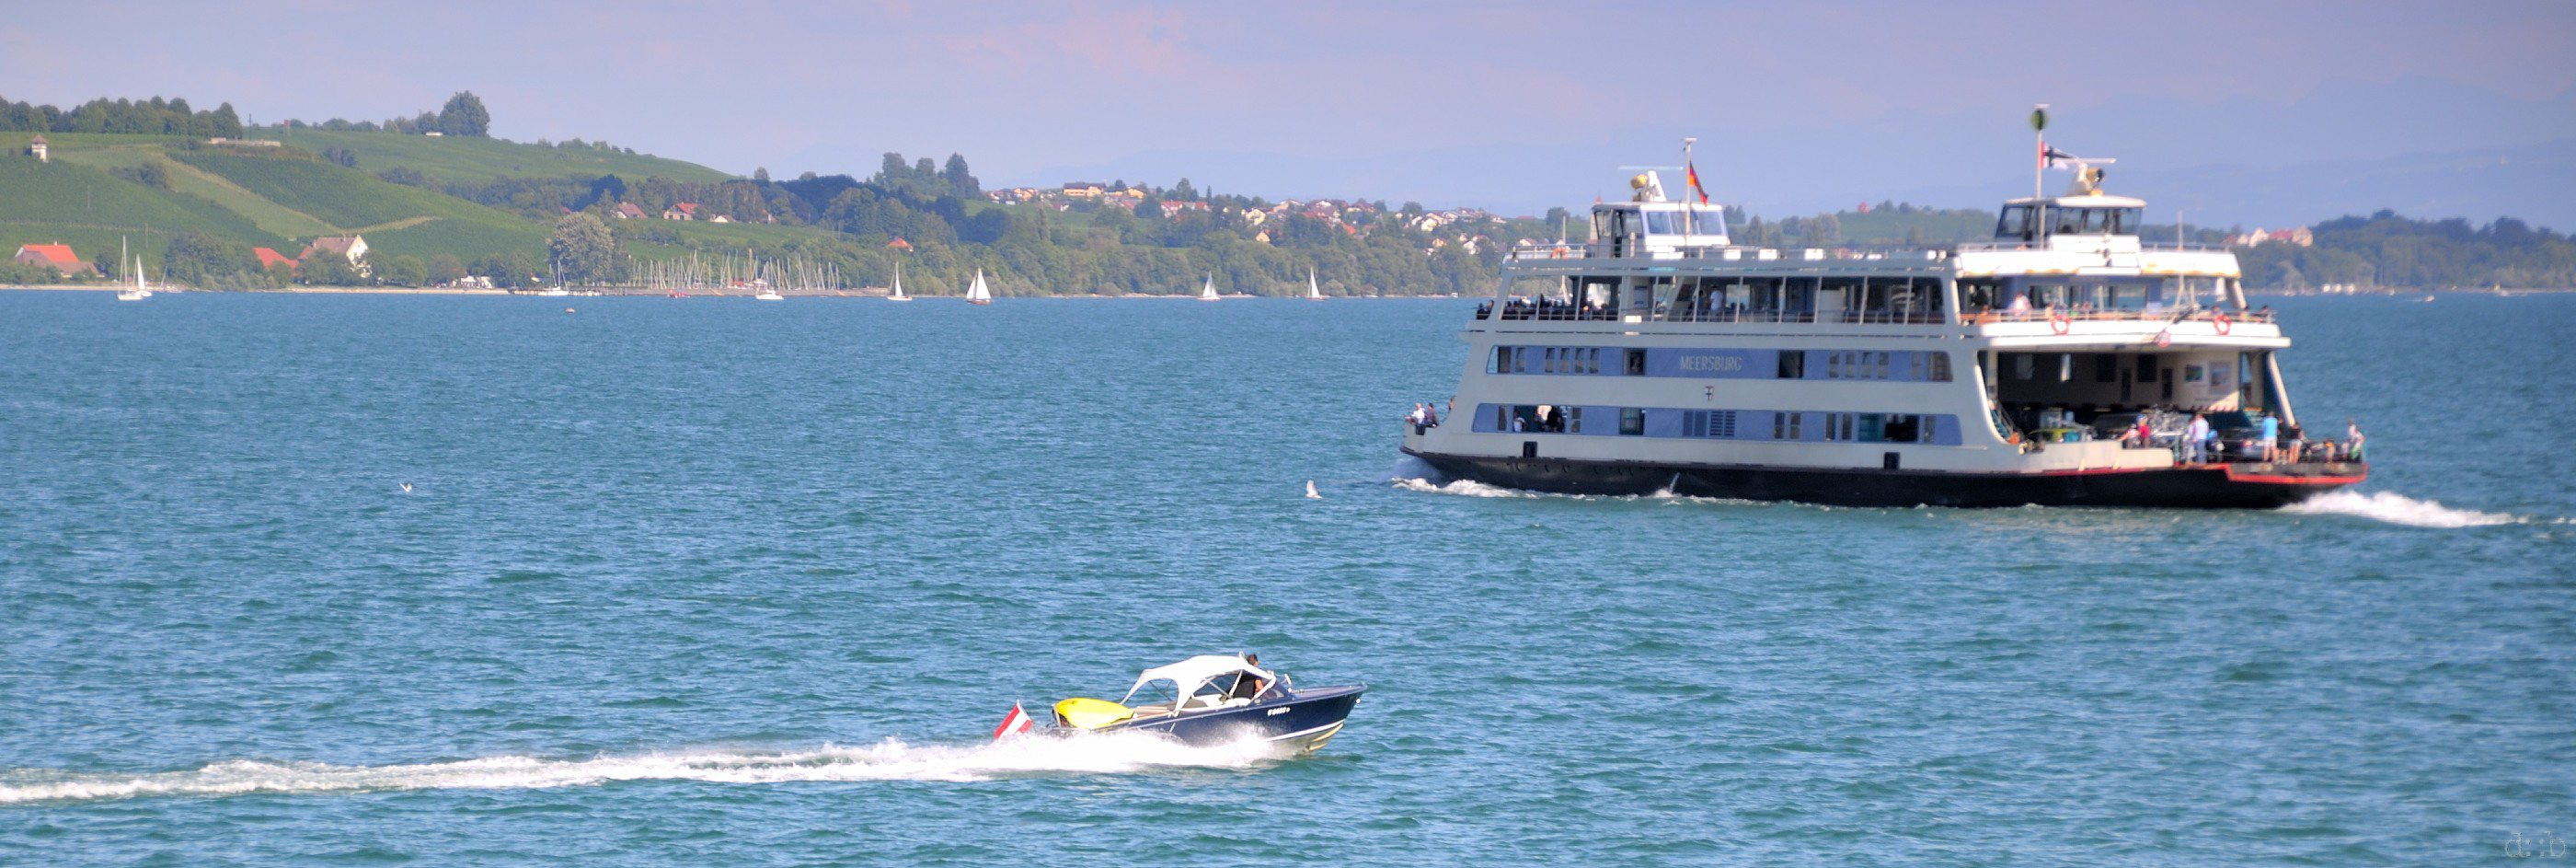 A sports yacht meets a ferry on Lake Constance near Friedrichshafen.